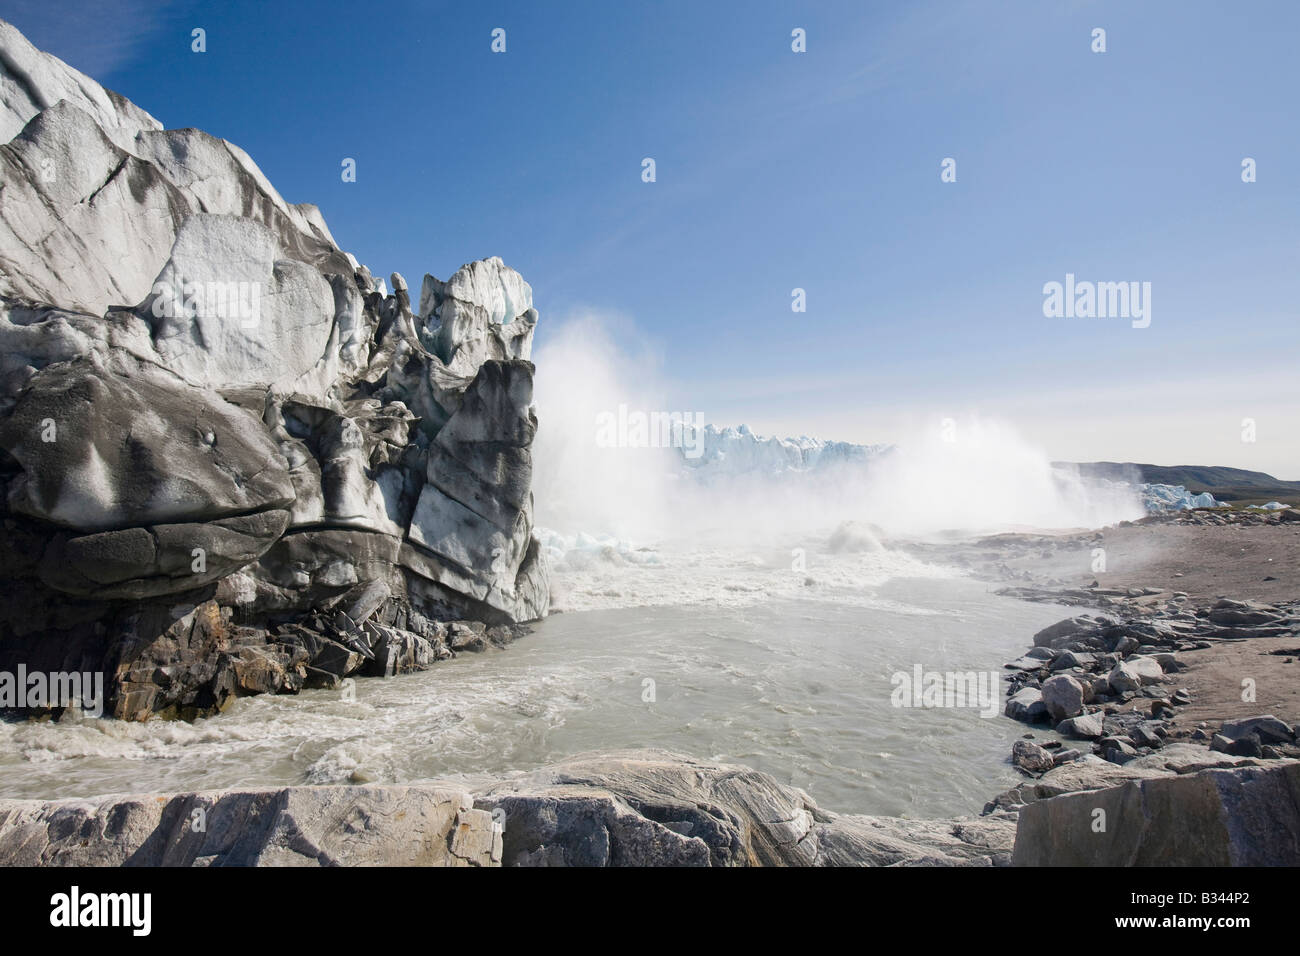 The rapidly melting Russell glacier in Greenland retreating due to climate change - Stock Image